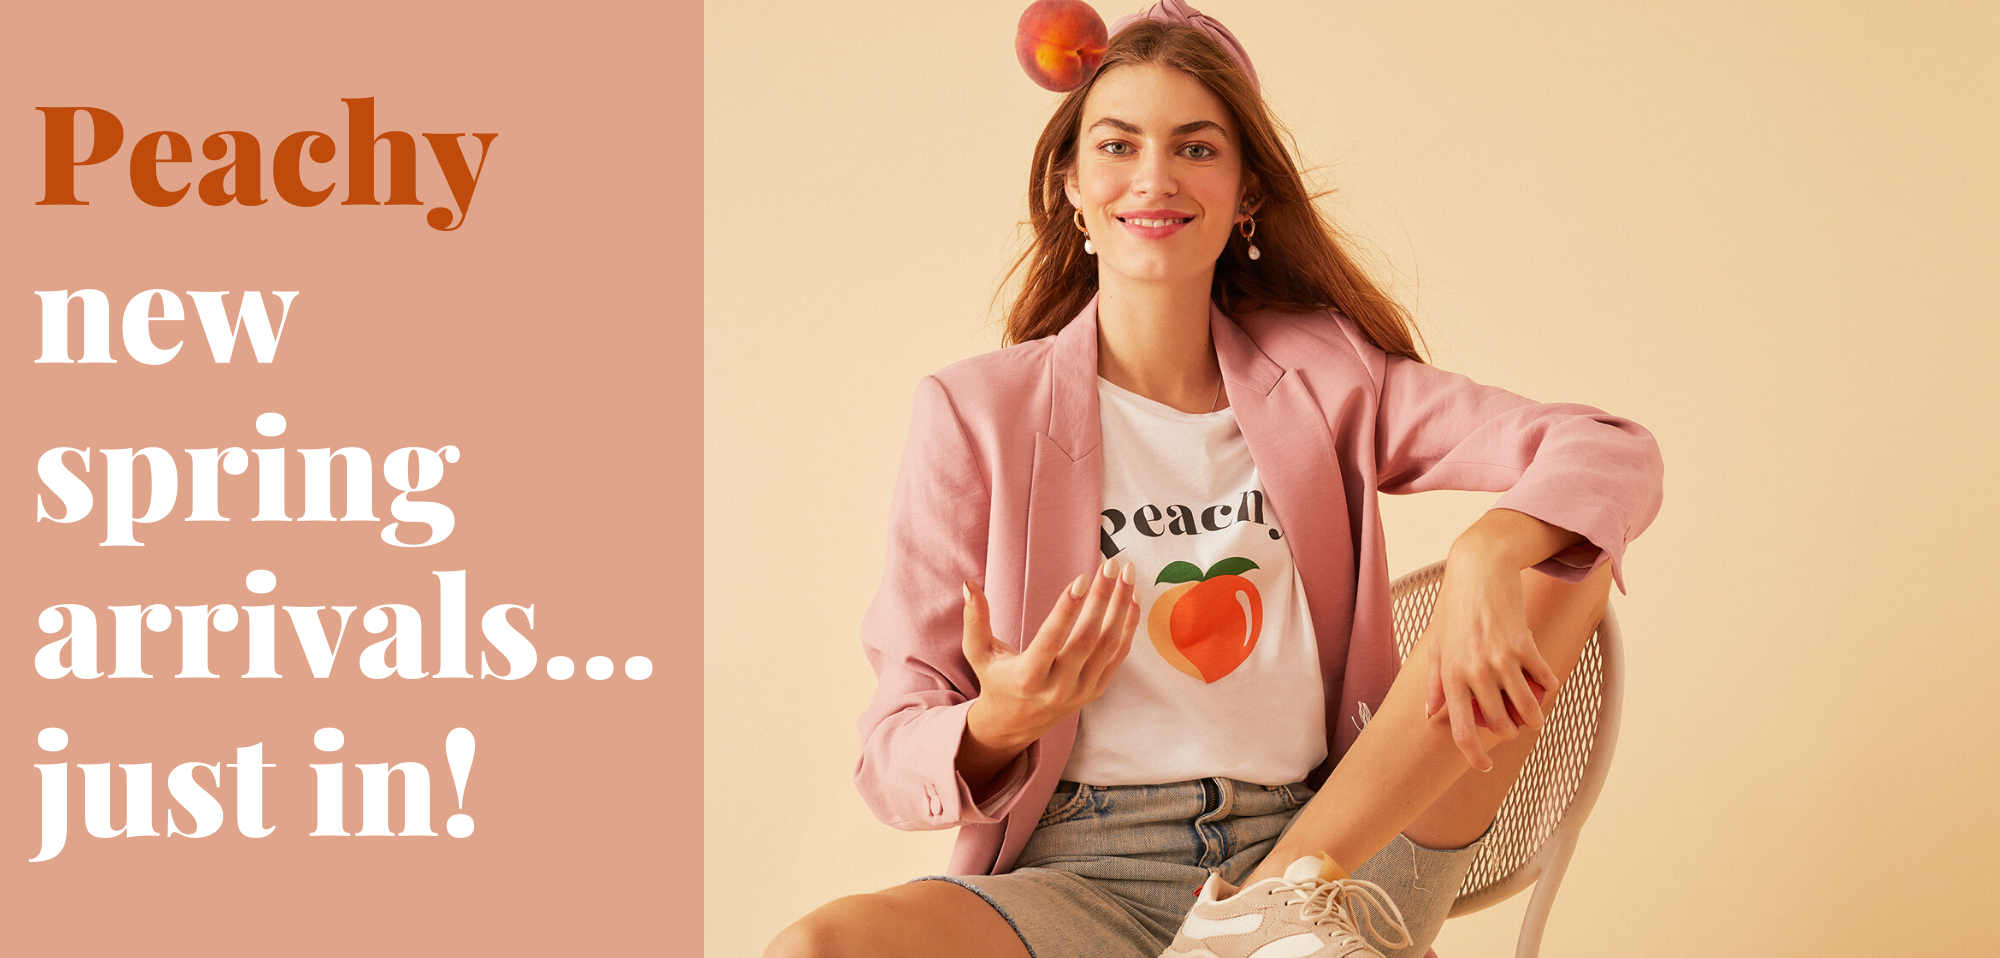 Peachy new spring arrivals... just in!